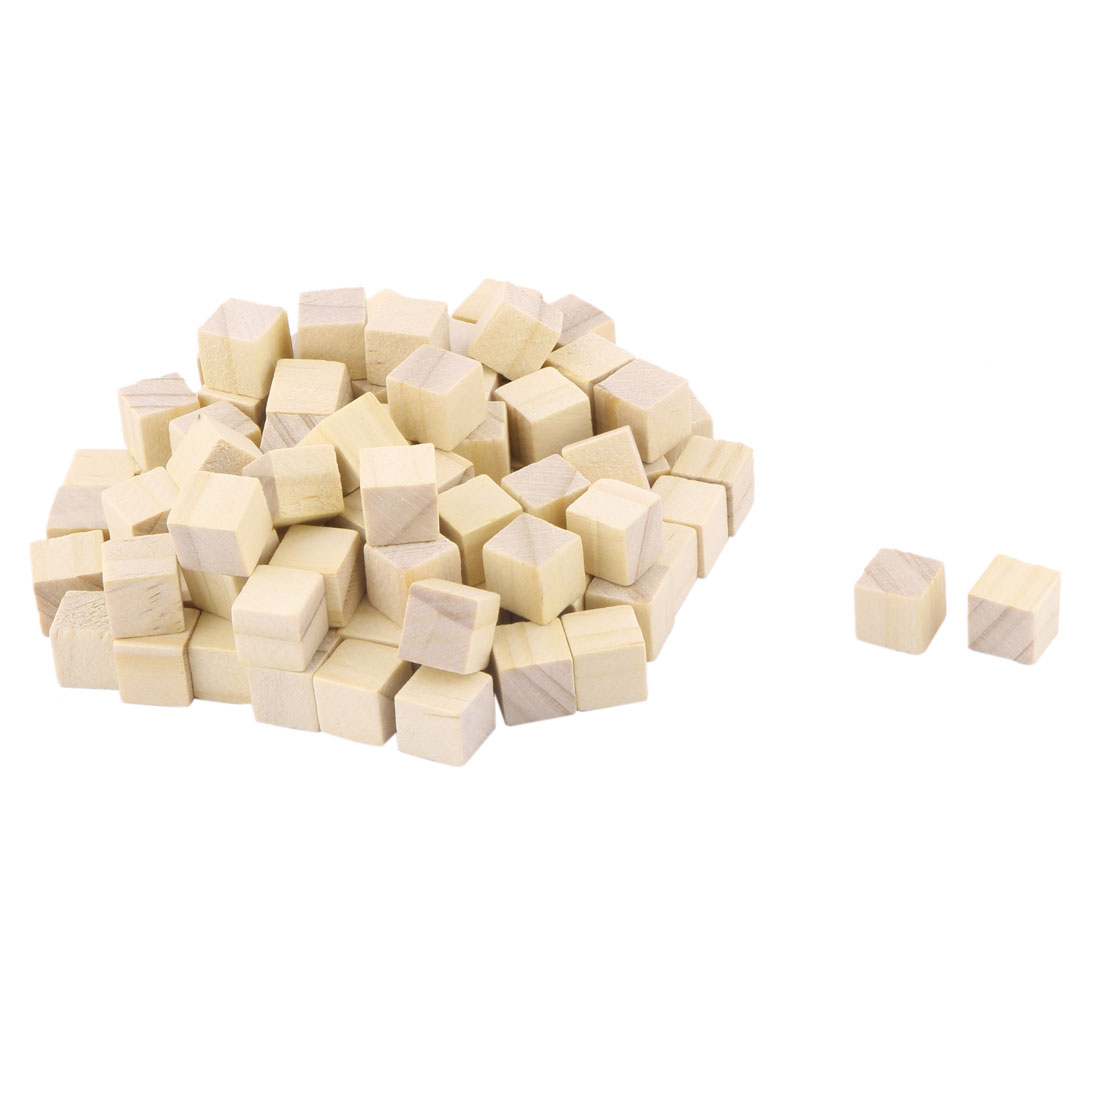 Wooden Art Crafts DIY Scrapbooking Embellishment Block Beige 10 x 10 x 10mm 100pcs